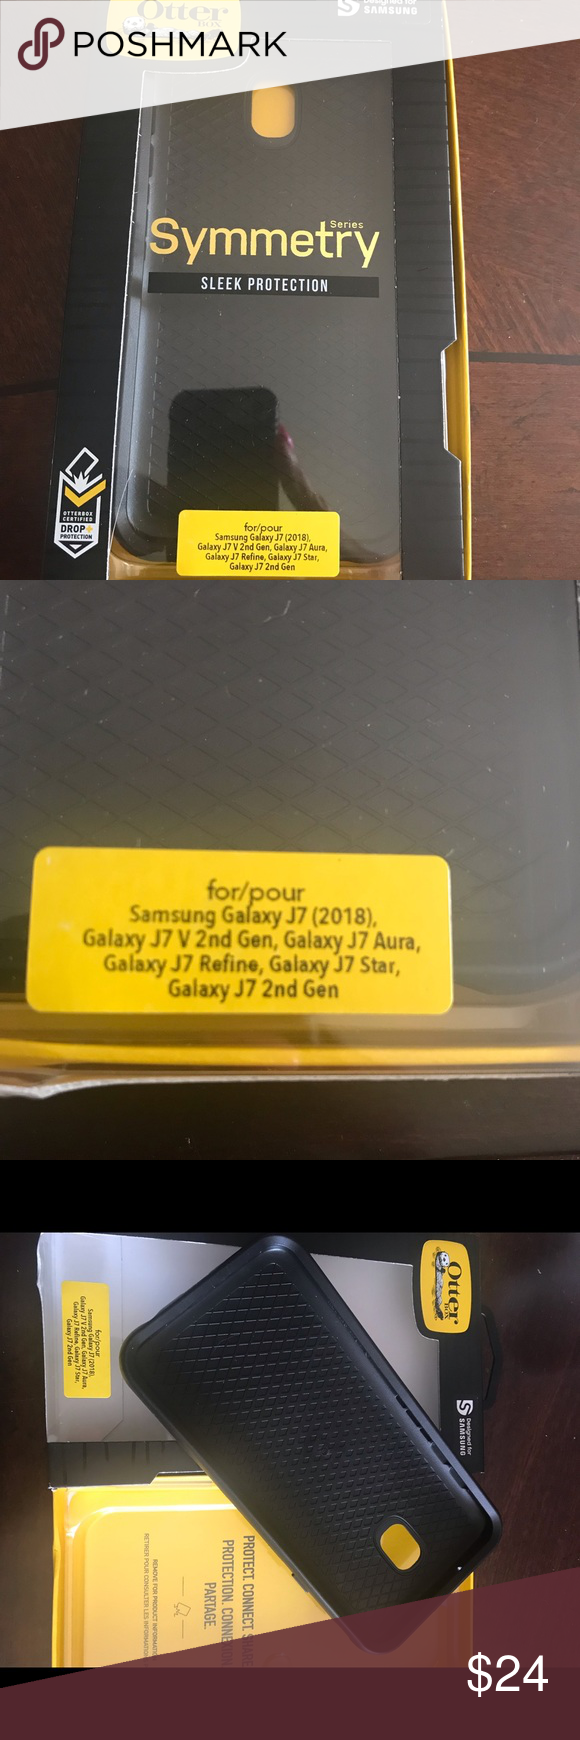 best sneakers 830a8 1dff6 OtterBox cover for Samsung Galaxy J7 New in box. Fits Samsung Galaxy ...